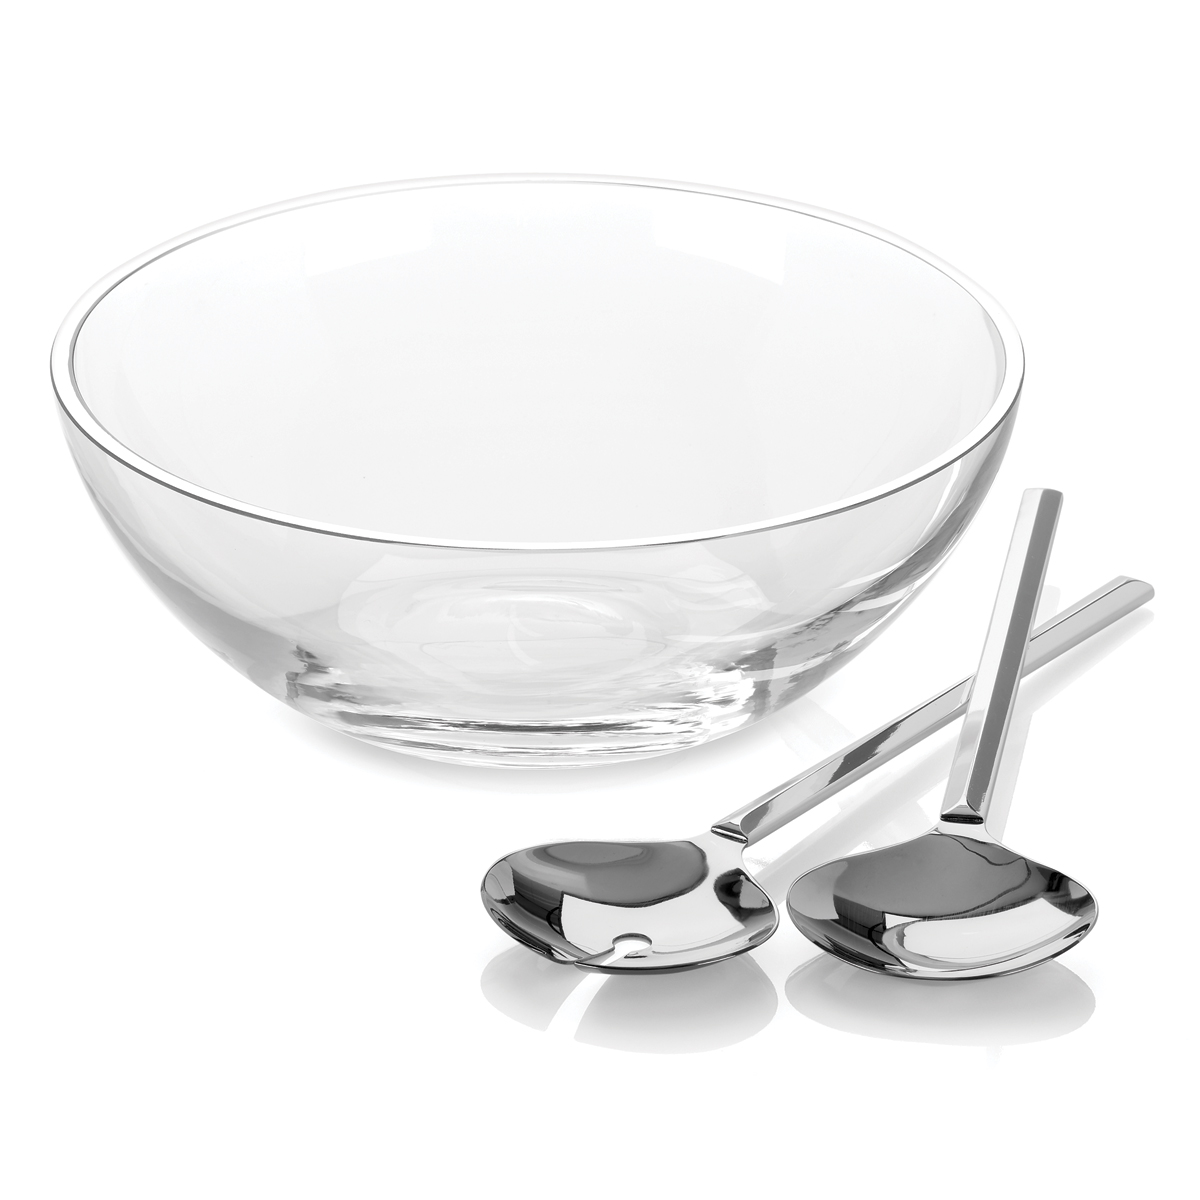 Kate Spade New York, Lenox Gramercy Salad Bowl Set with Metal Servers